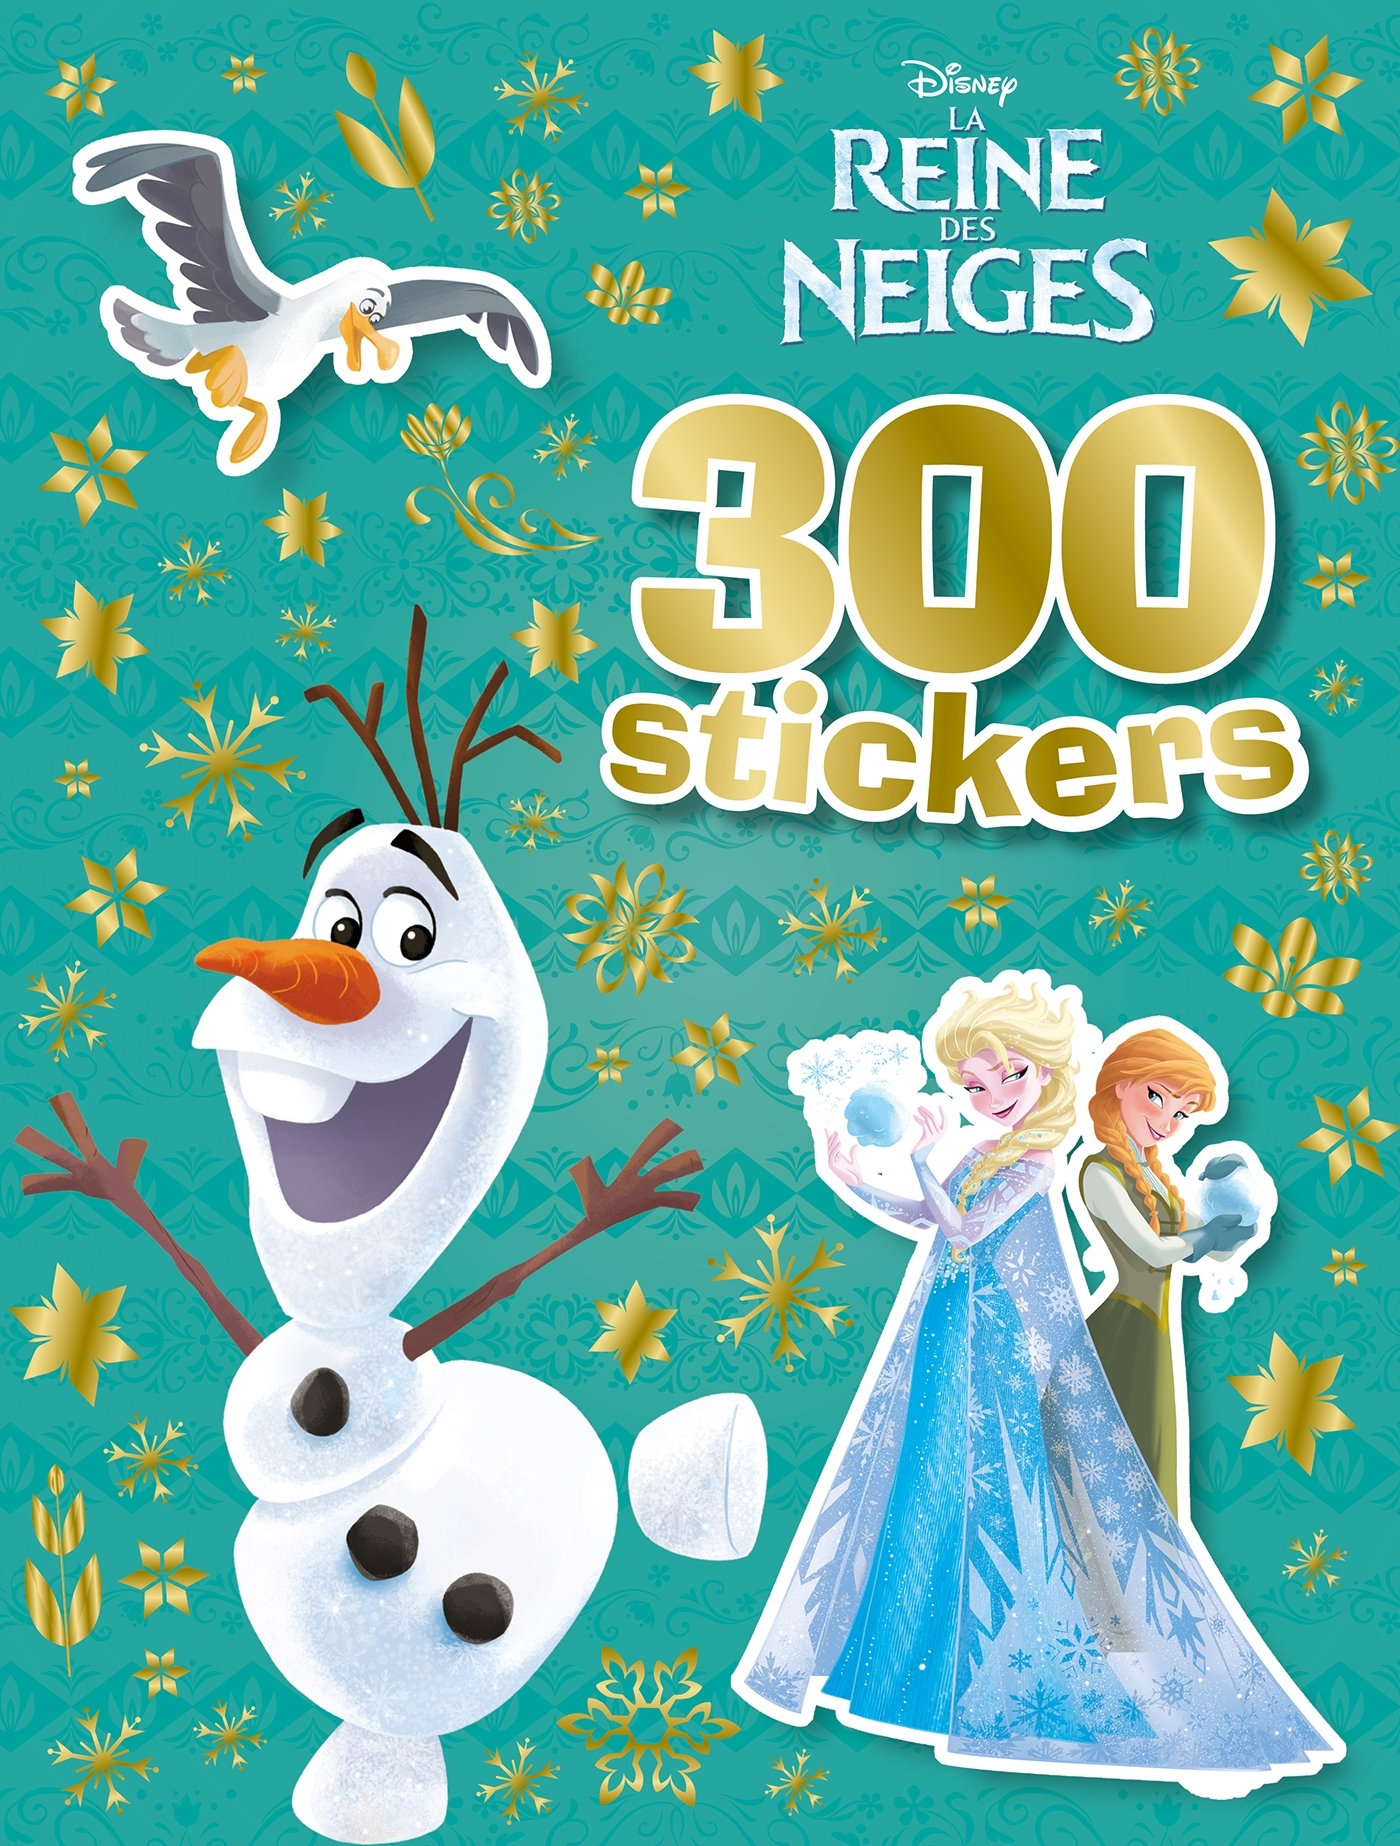 LA REINE DES NEIGES, 300 STICKERS - OLAF